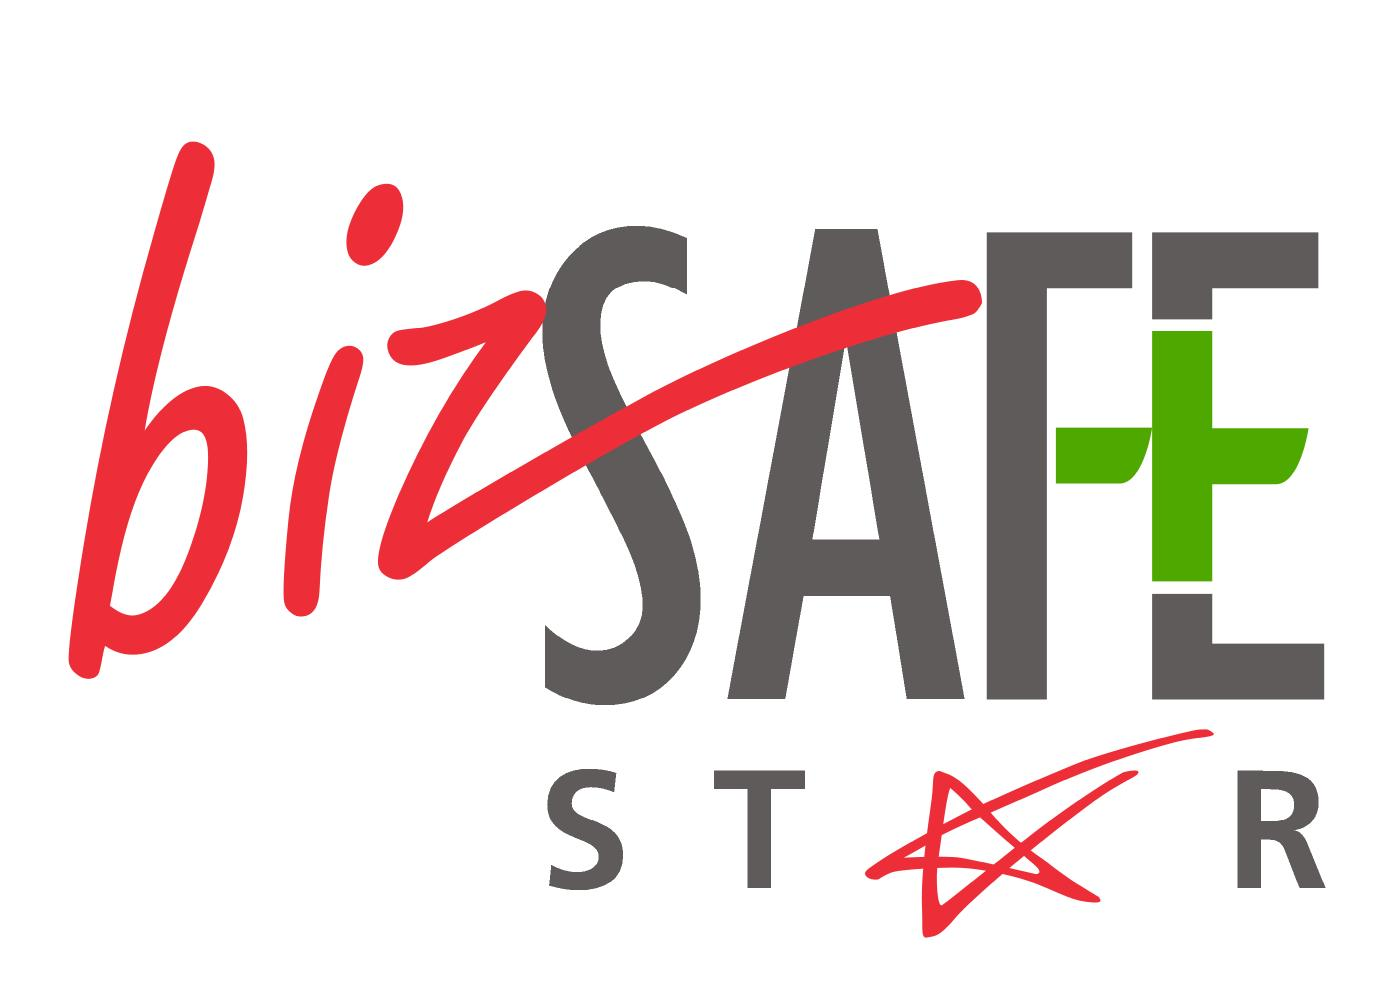 bizSAFE Enterprise Level STAR